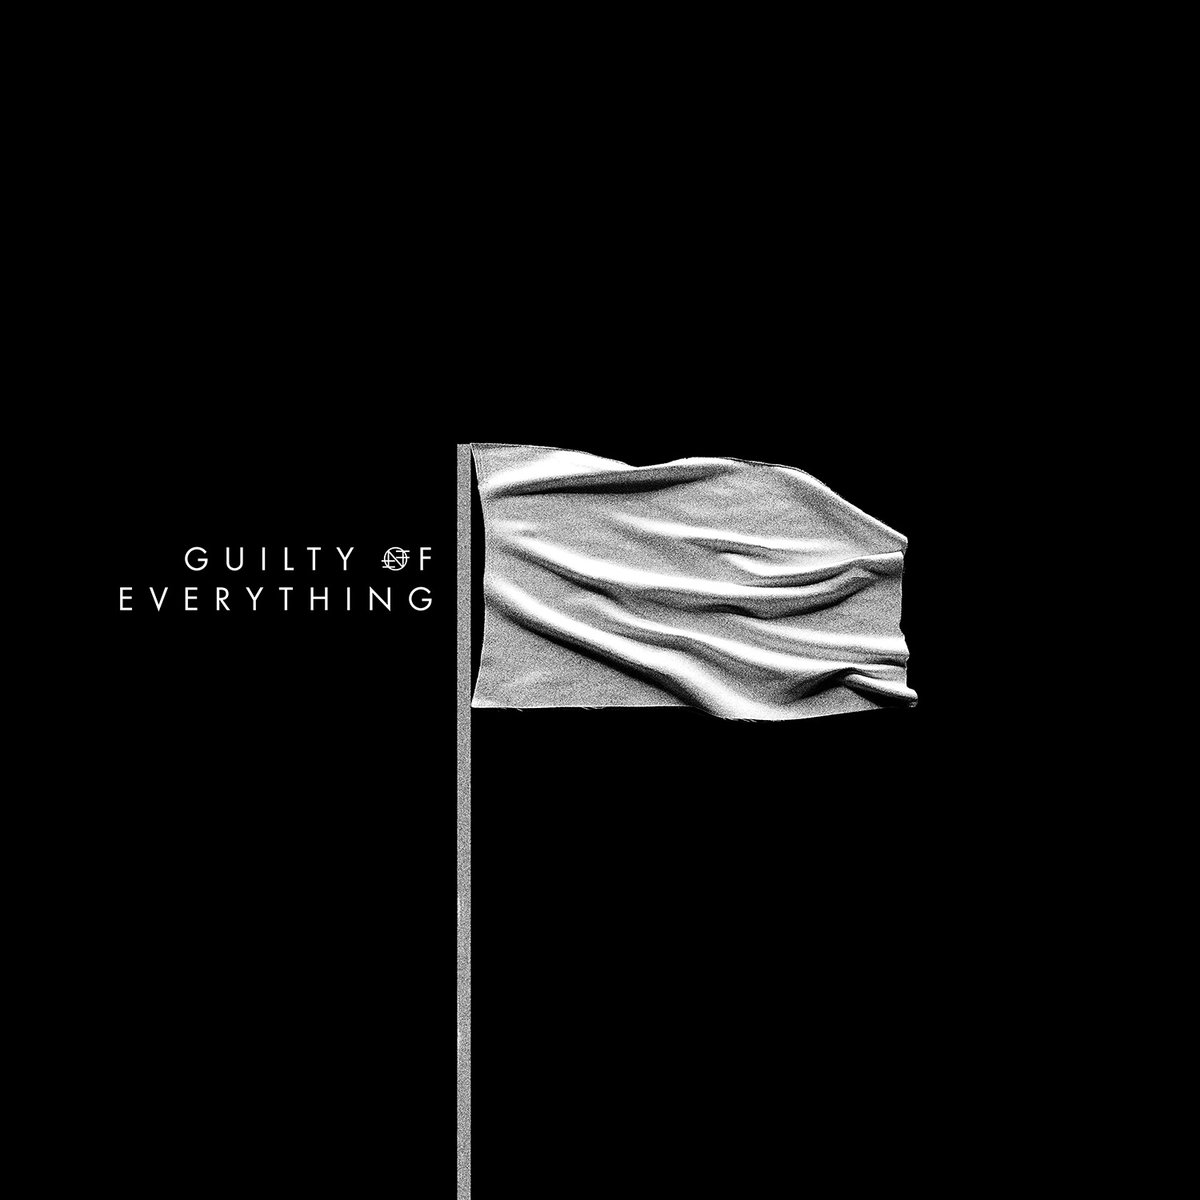 NOTHING Guilty Of Everything - Vinyl LP